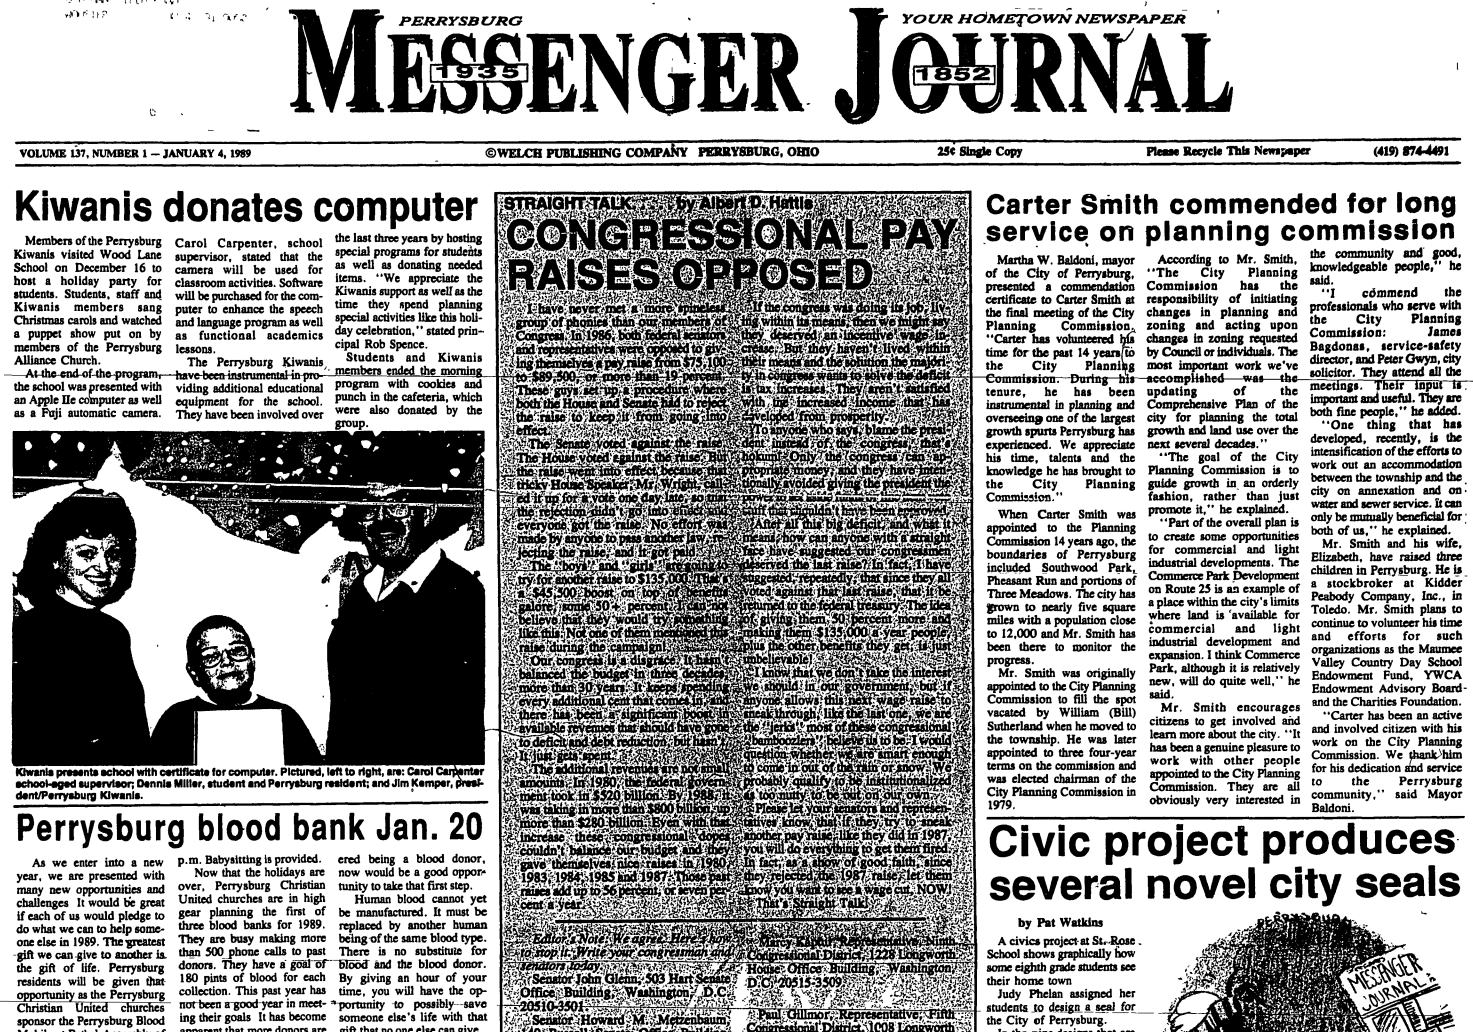 The Way Library Now Offers Historical Newspapers Online